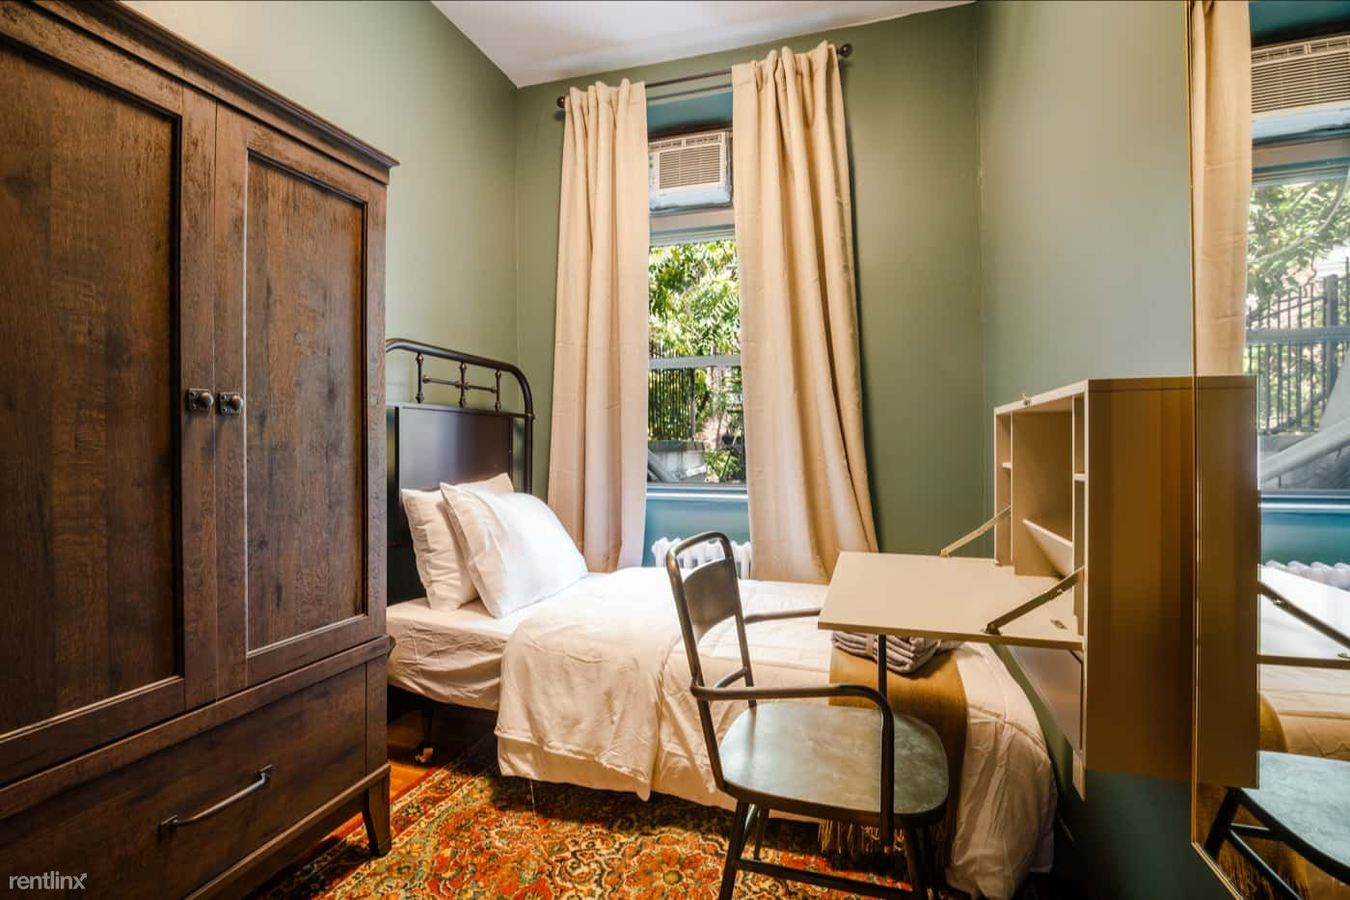 Studio 1 Bathroom Apartment for rent at 305 West 29th Street, New York City, Ny, 10001 in New York City, NY